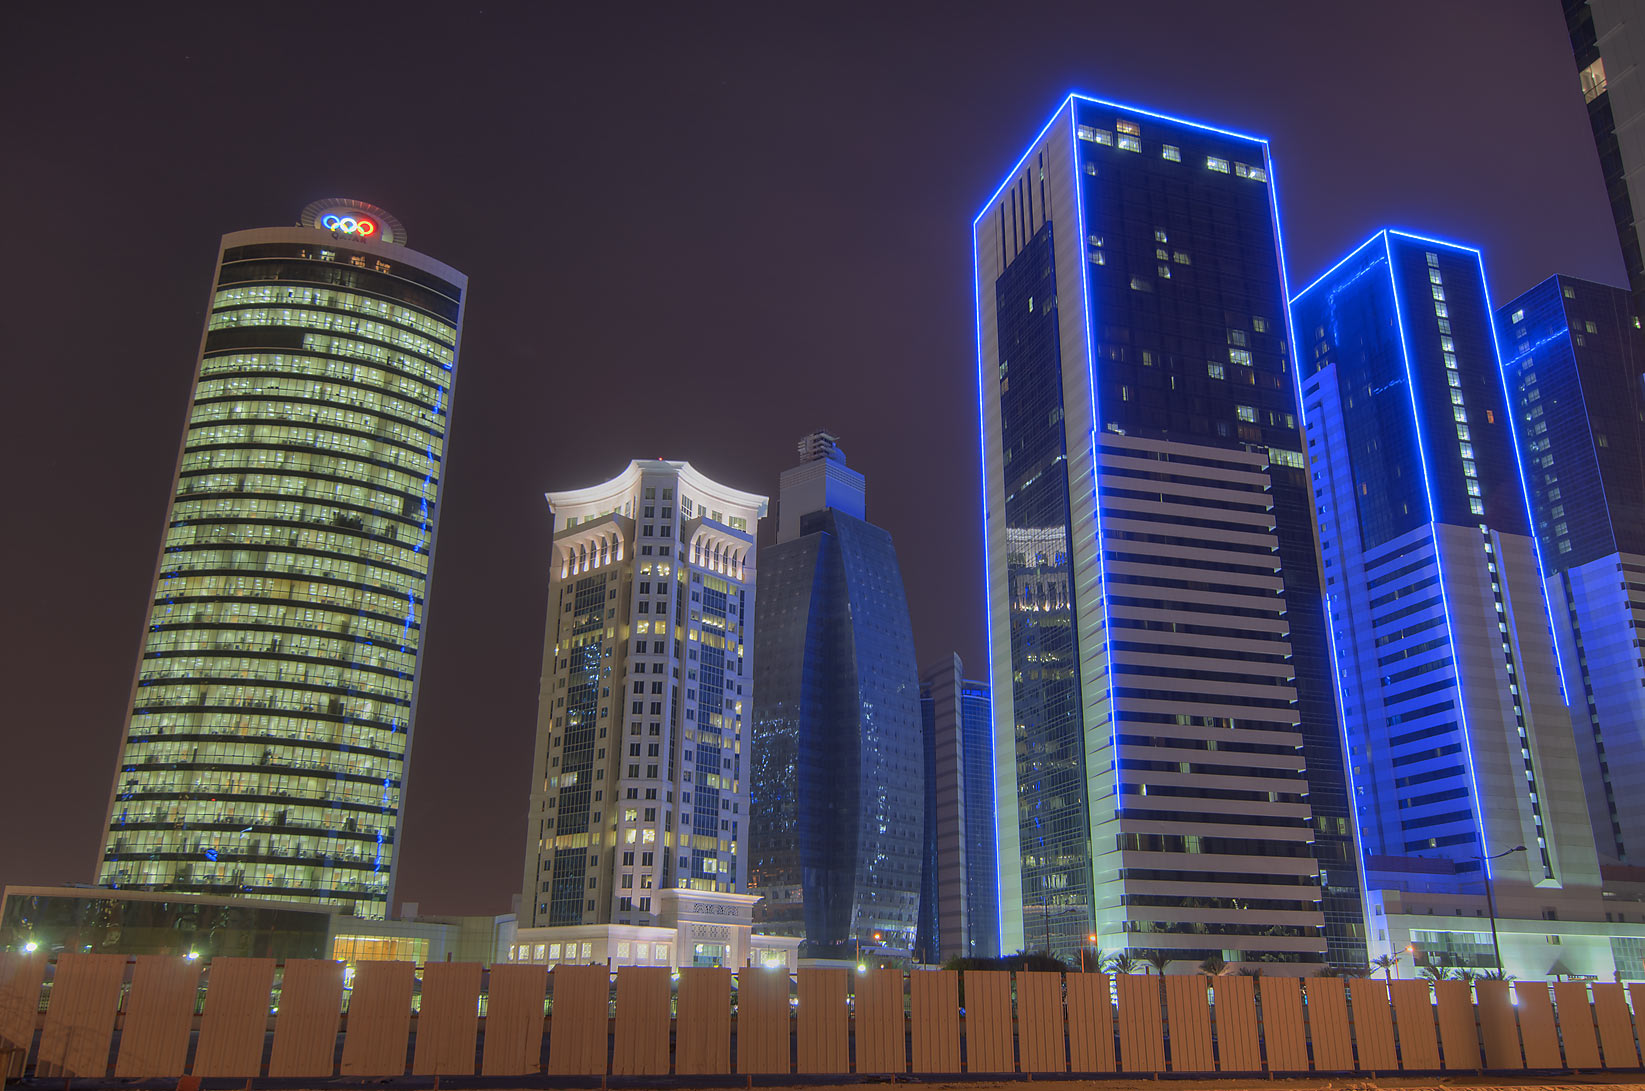 Olympic Tower, Al Qassar, and Ezdan Hotel in West Bay. Doha, Qatar